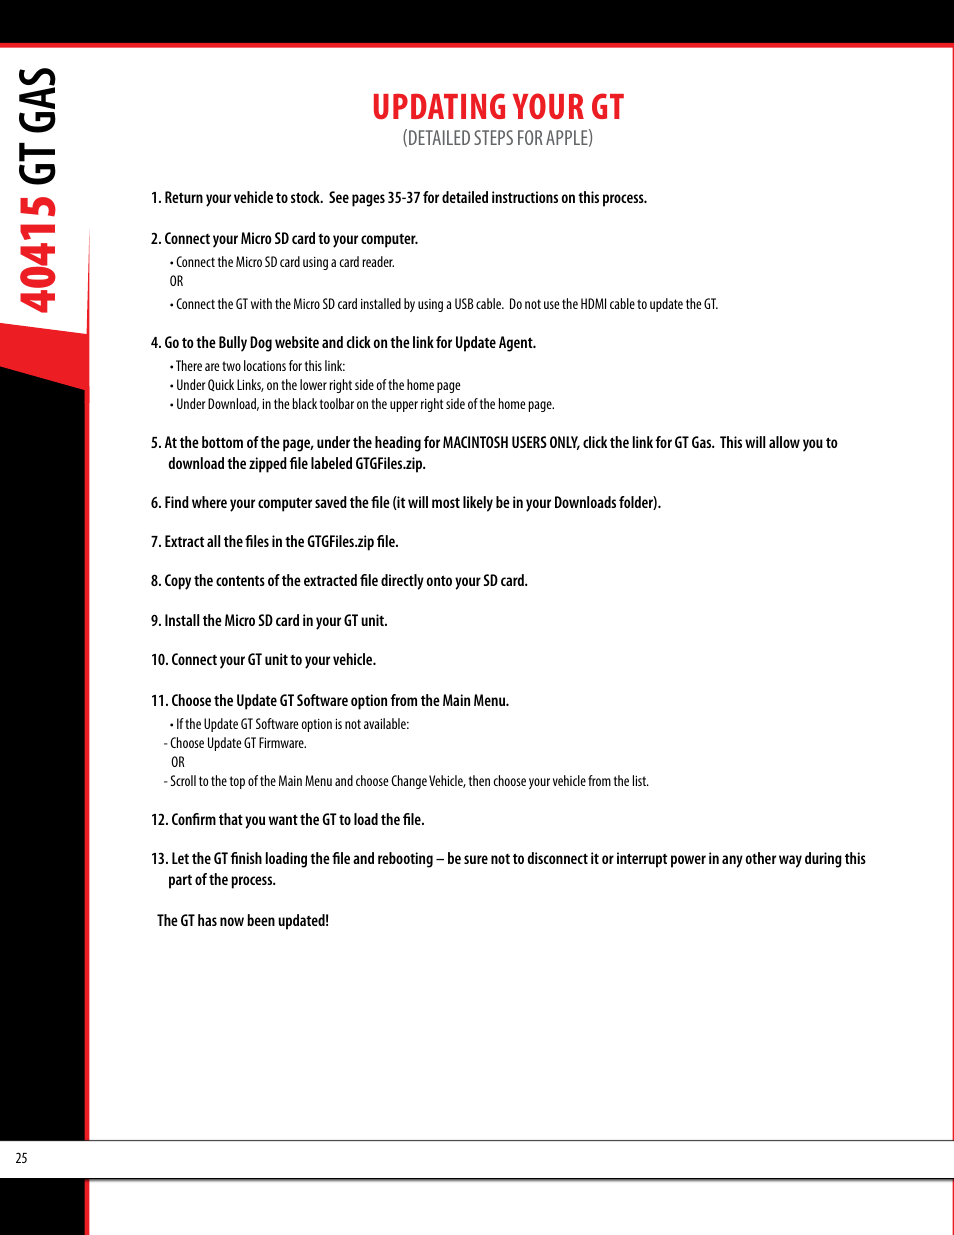 Updating your gt | Bully Dog 40415 gauge GT Gas tuner User Manual | Page 26